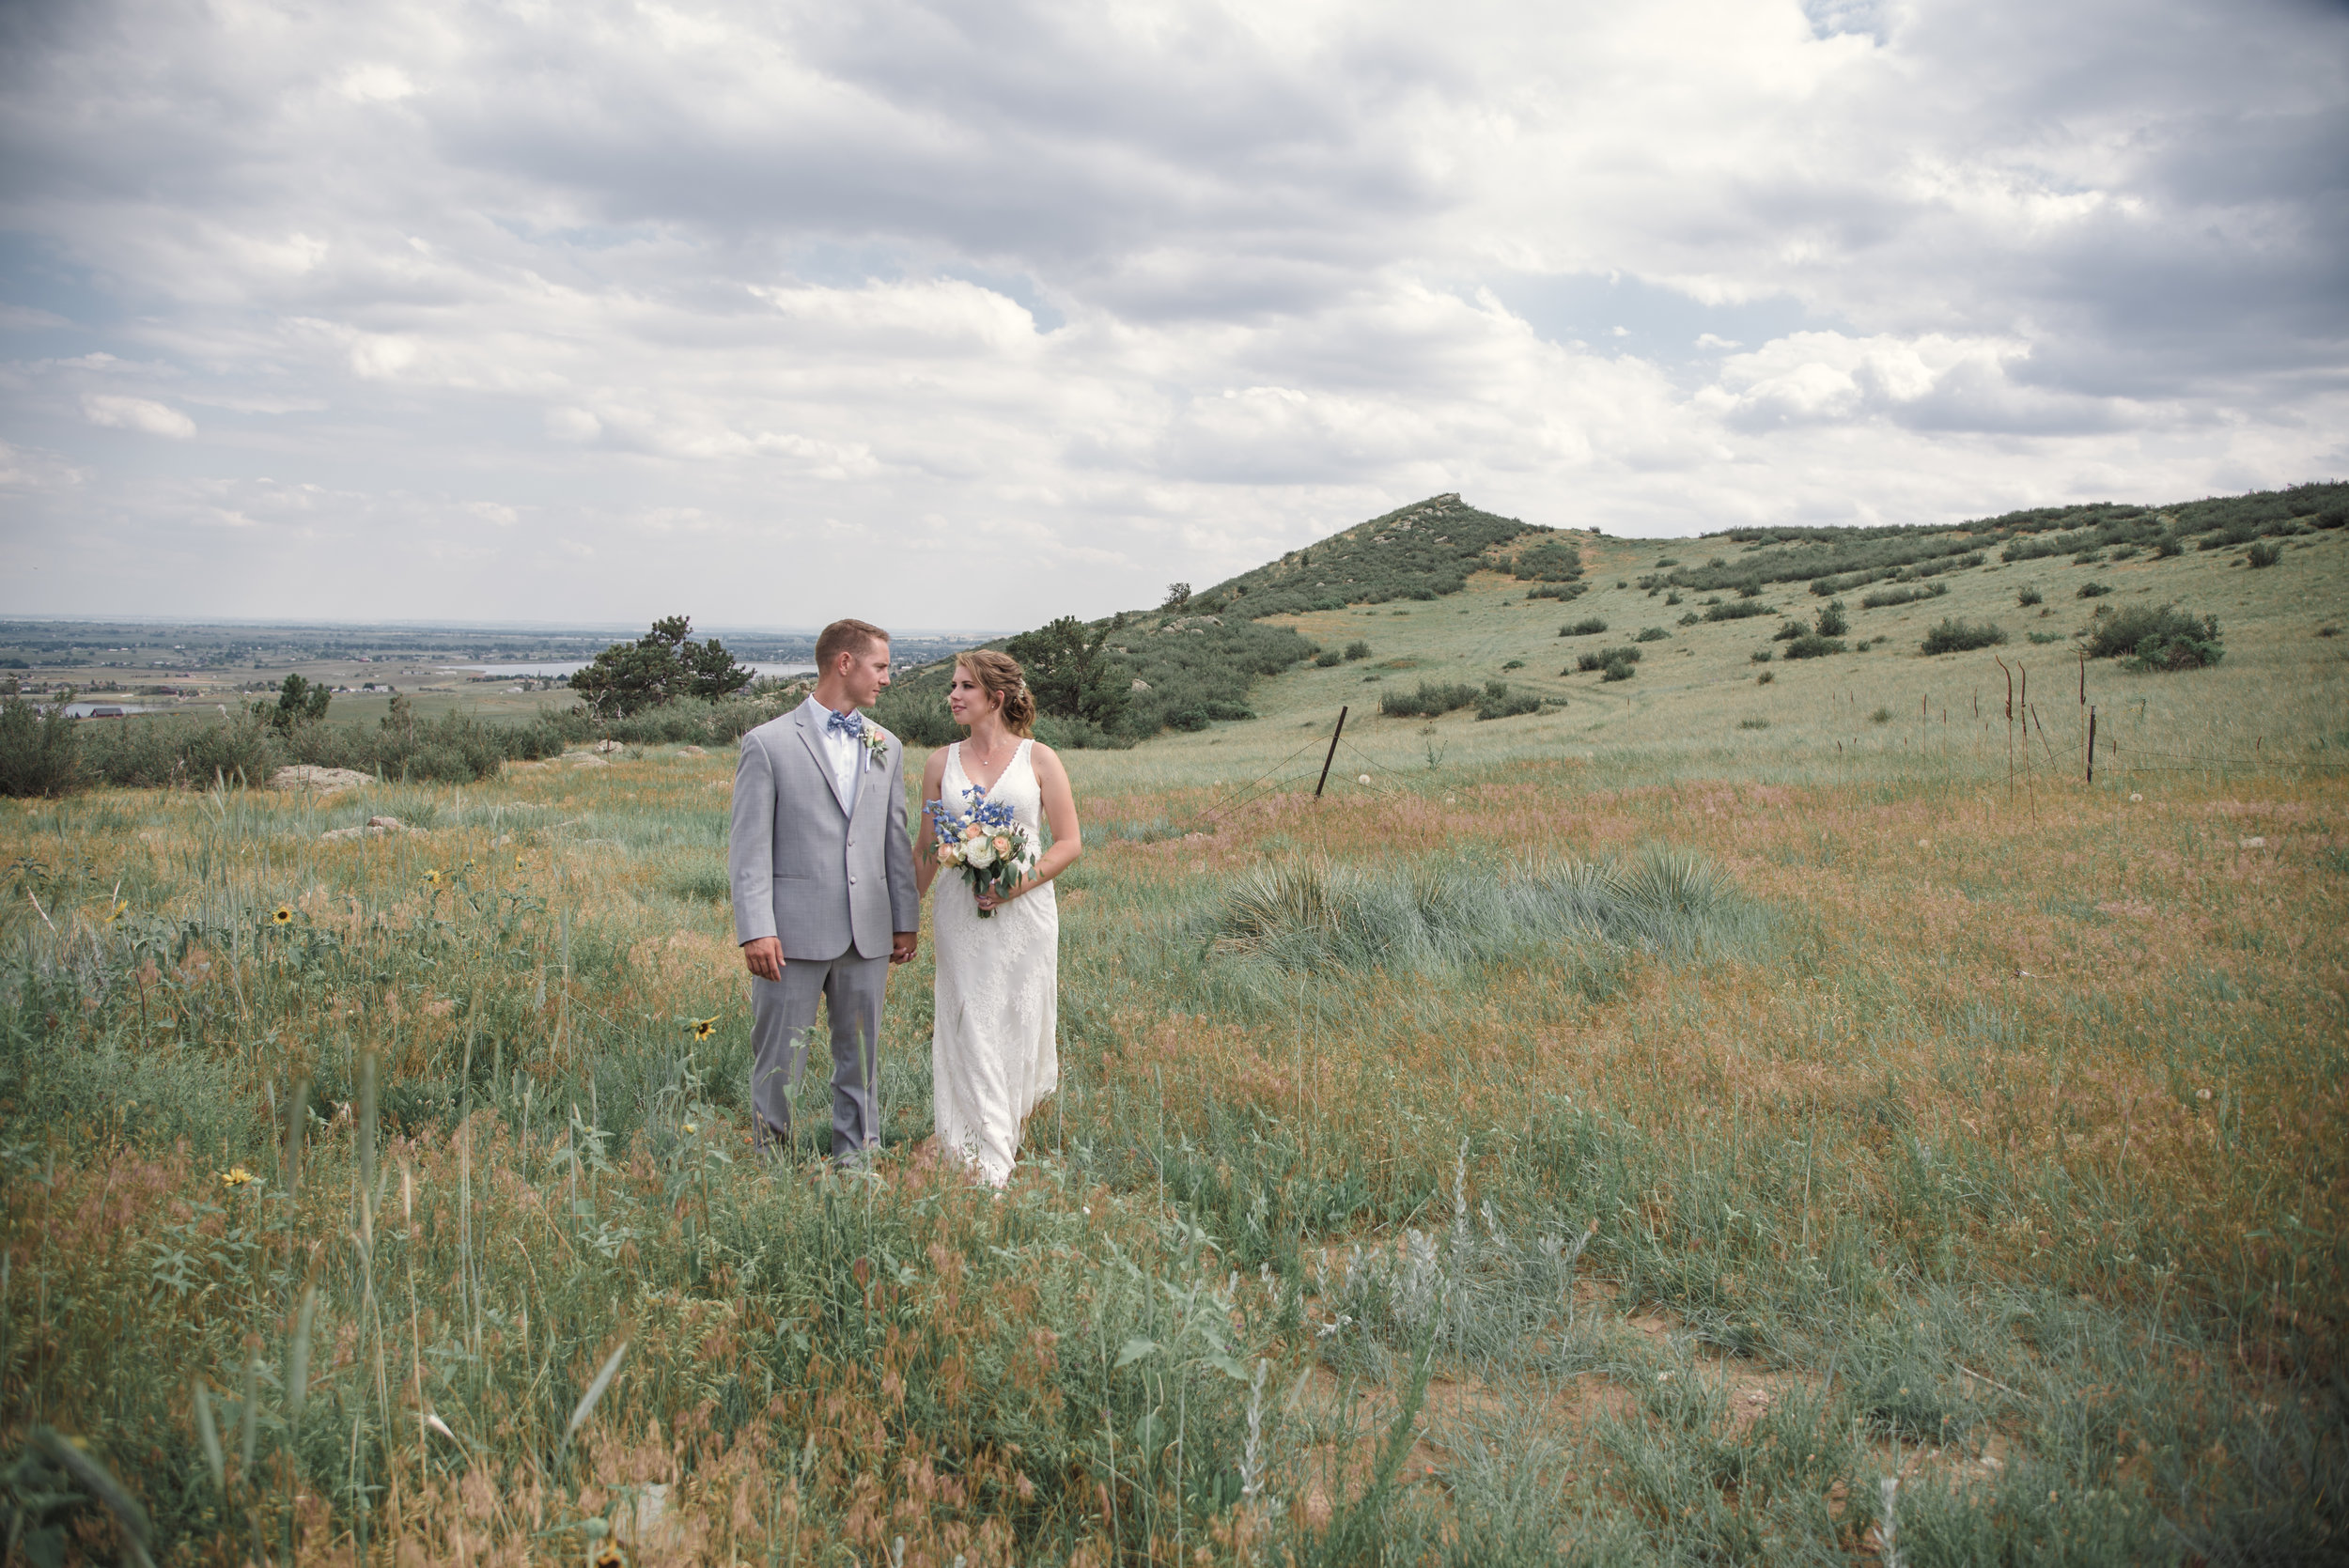 Bride and groom portraits, Mountain wedding details, colorado wedding, colorado wedding photographer, denver wedding photographer, downtown denver wedding photographer, rocky mountain wedding photographer, intimate colorado wedding photographer, mountain elopement photographer